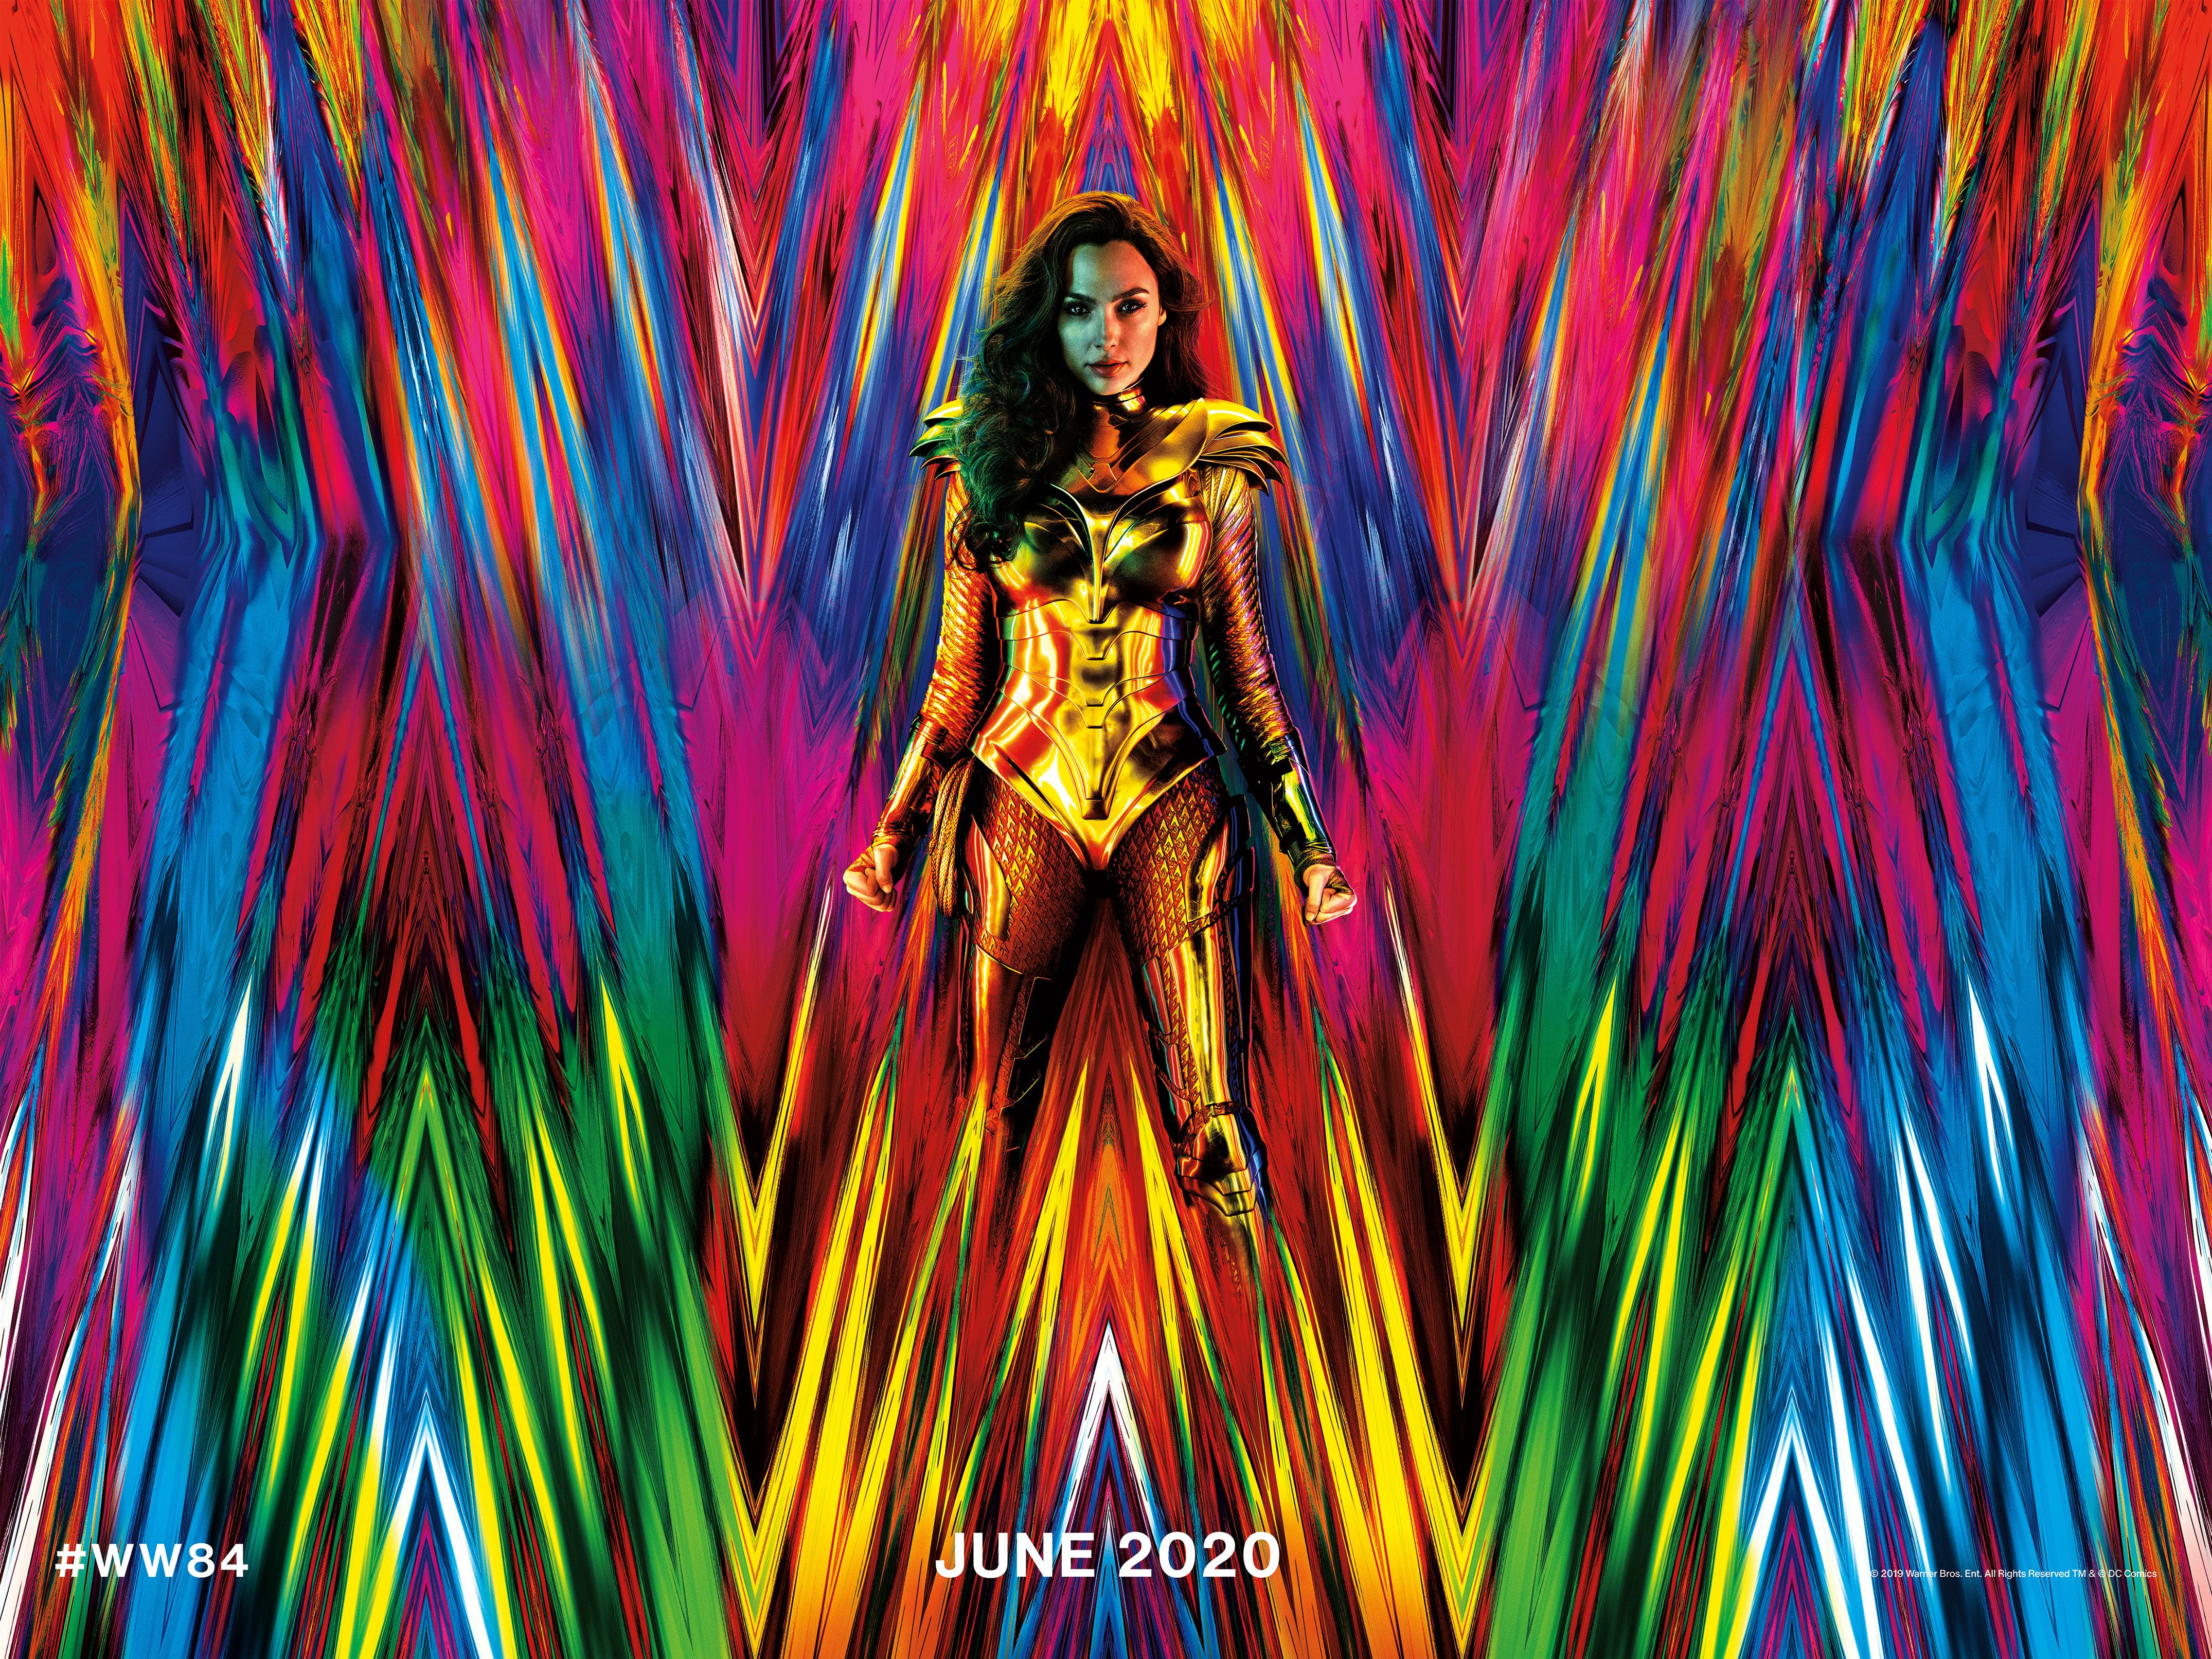 Wonder Woman 1984's first trailer is finally here